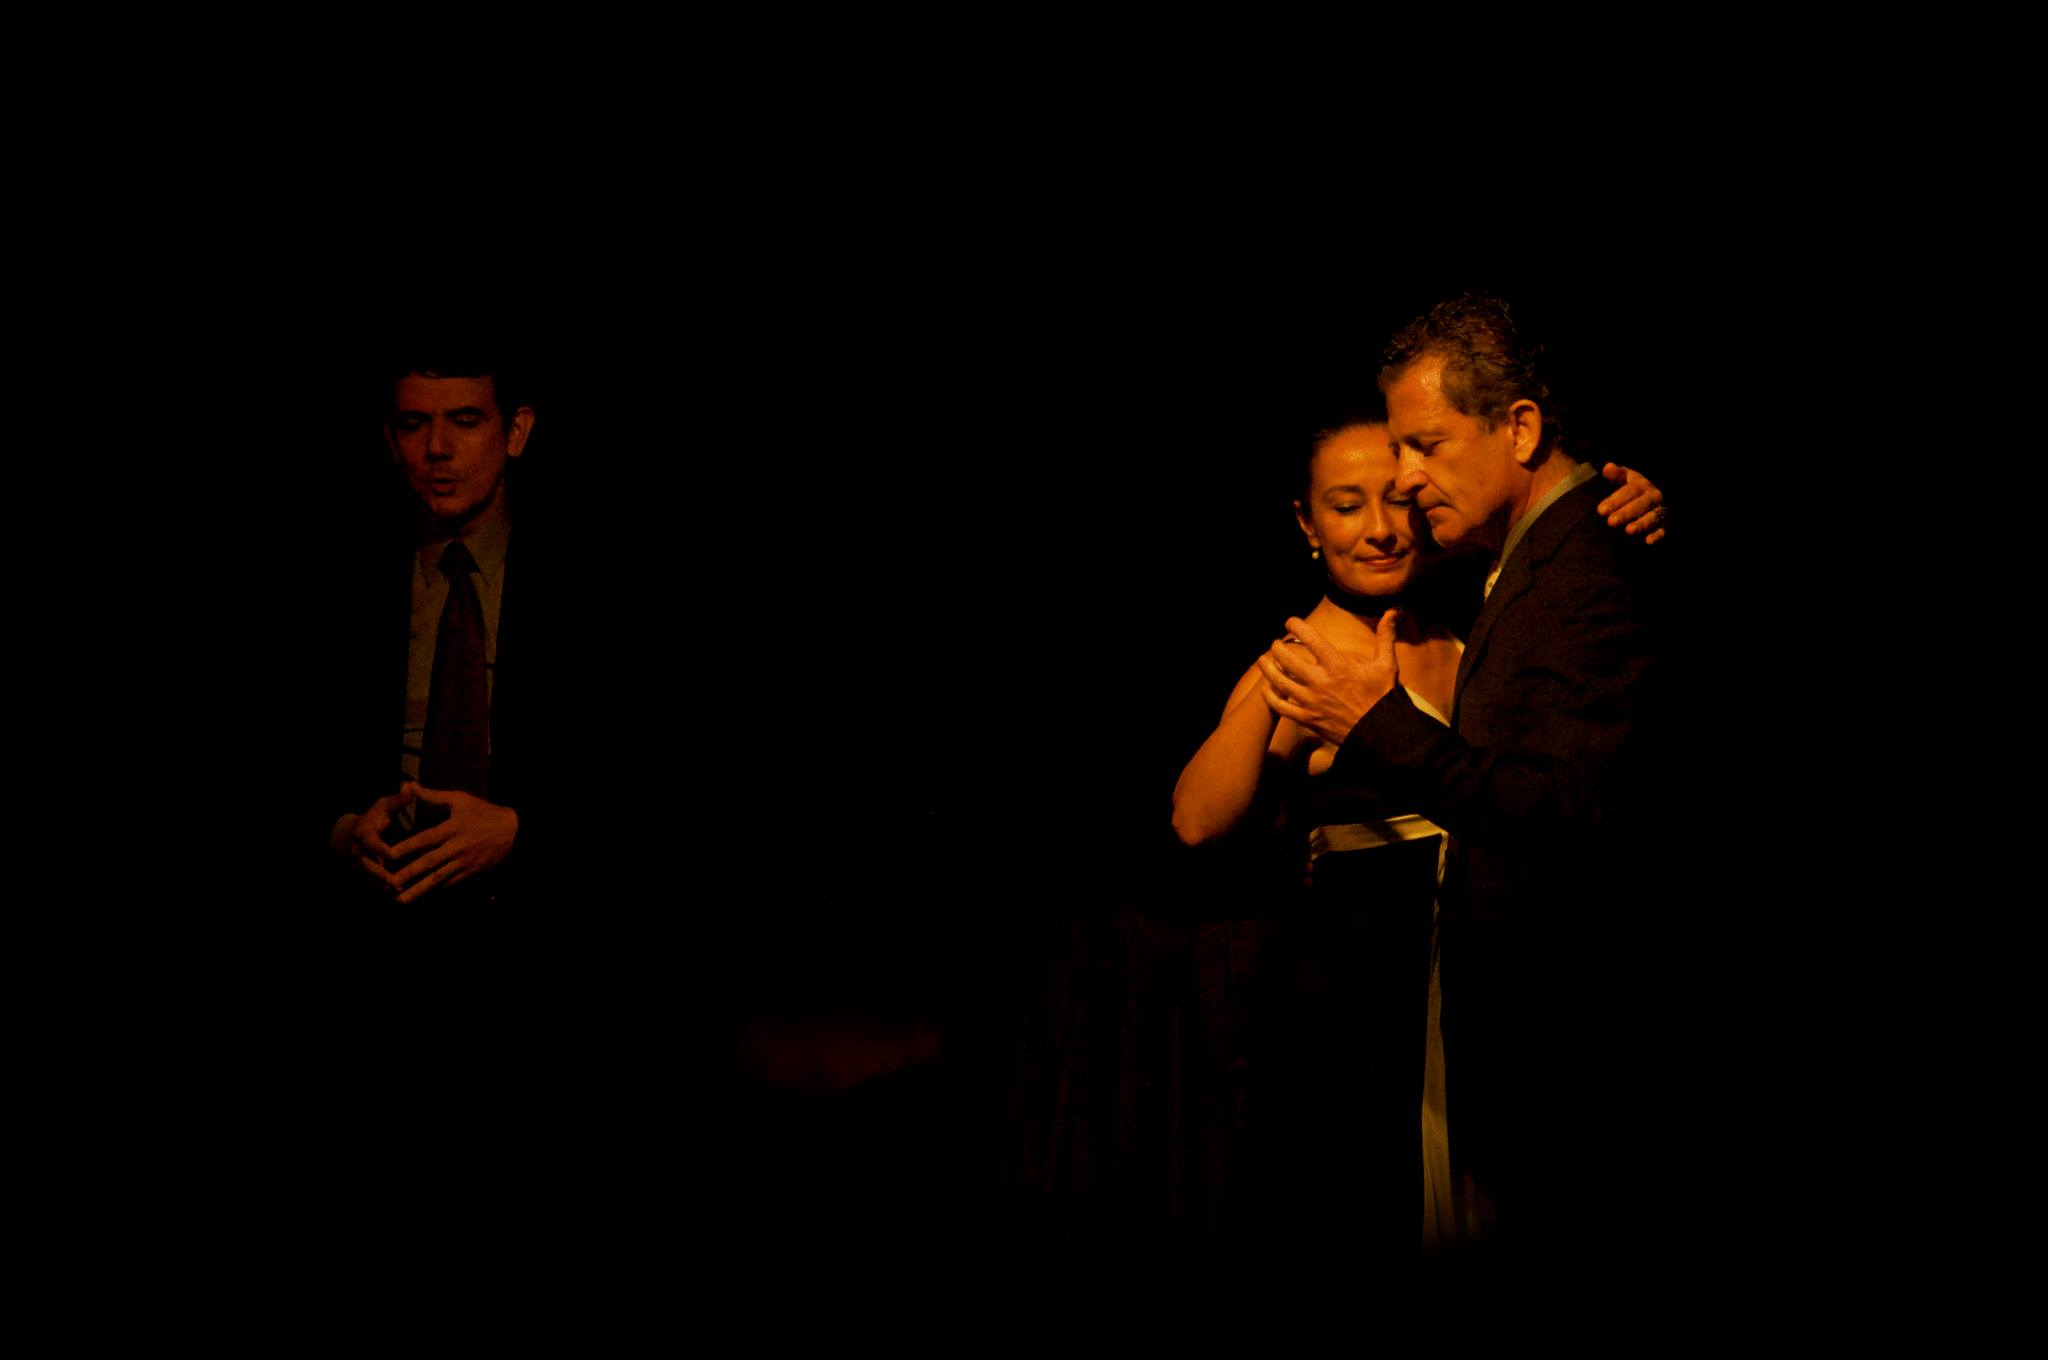 In Teatro LATEA, NYC, with Laurence Martin at a tango show by Pablo Ziegler t a tango show in Teatro LATEA, NYC